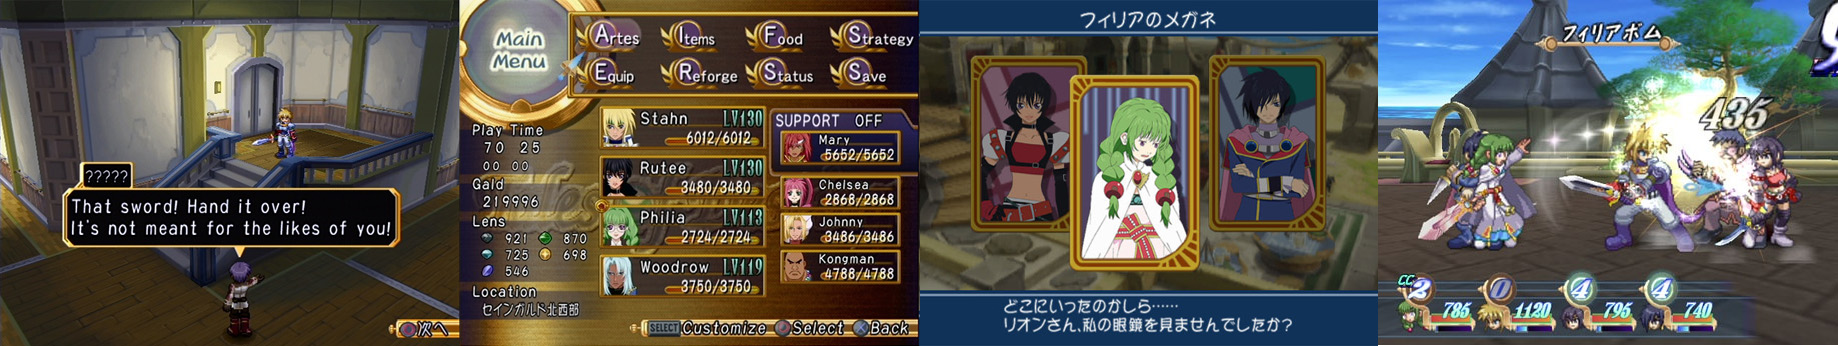 Tales of Destiny scr remake